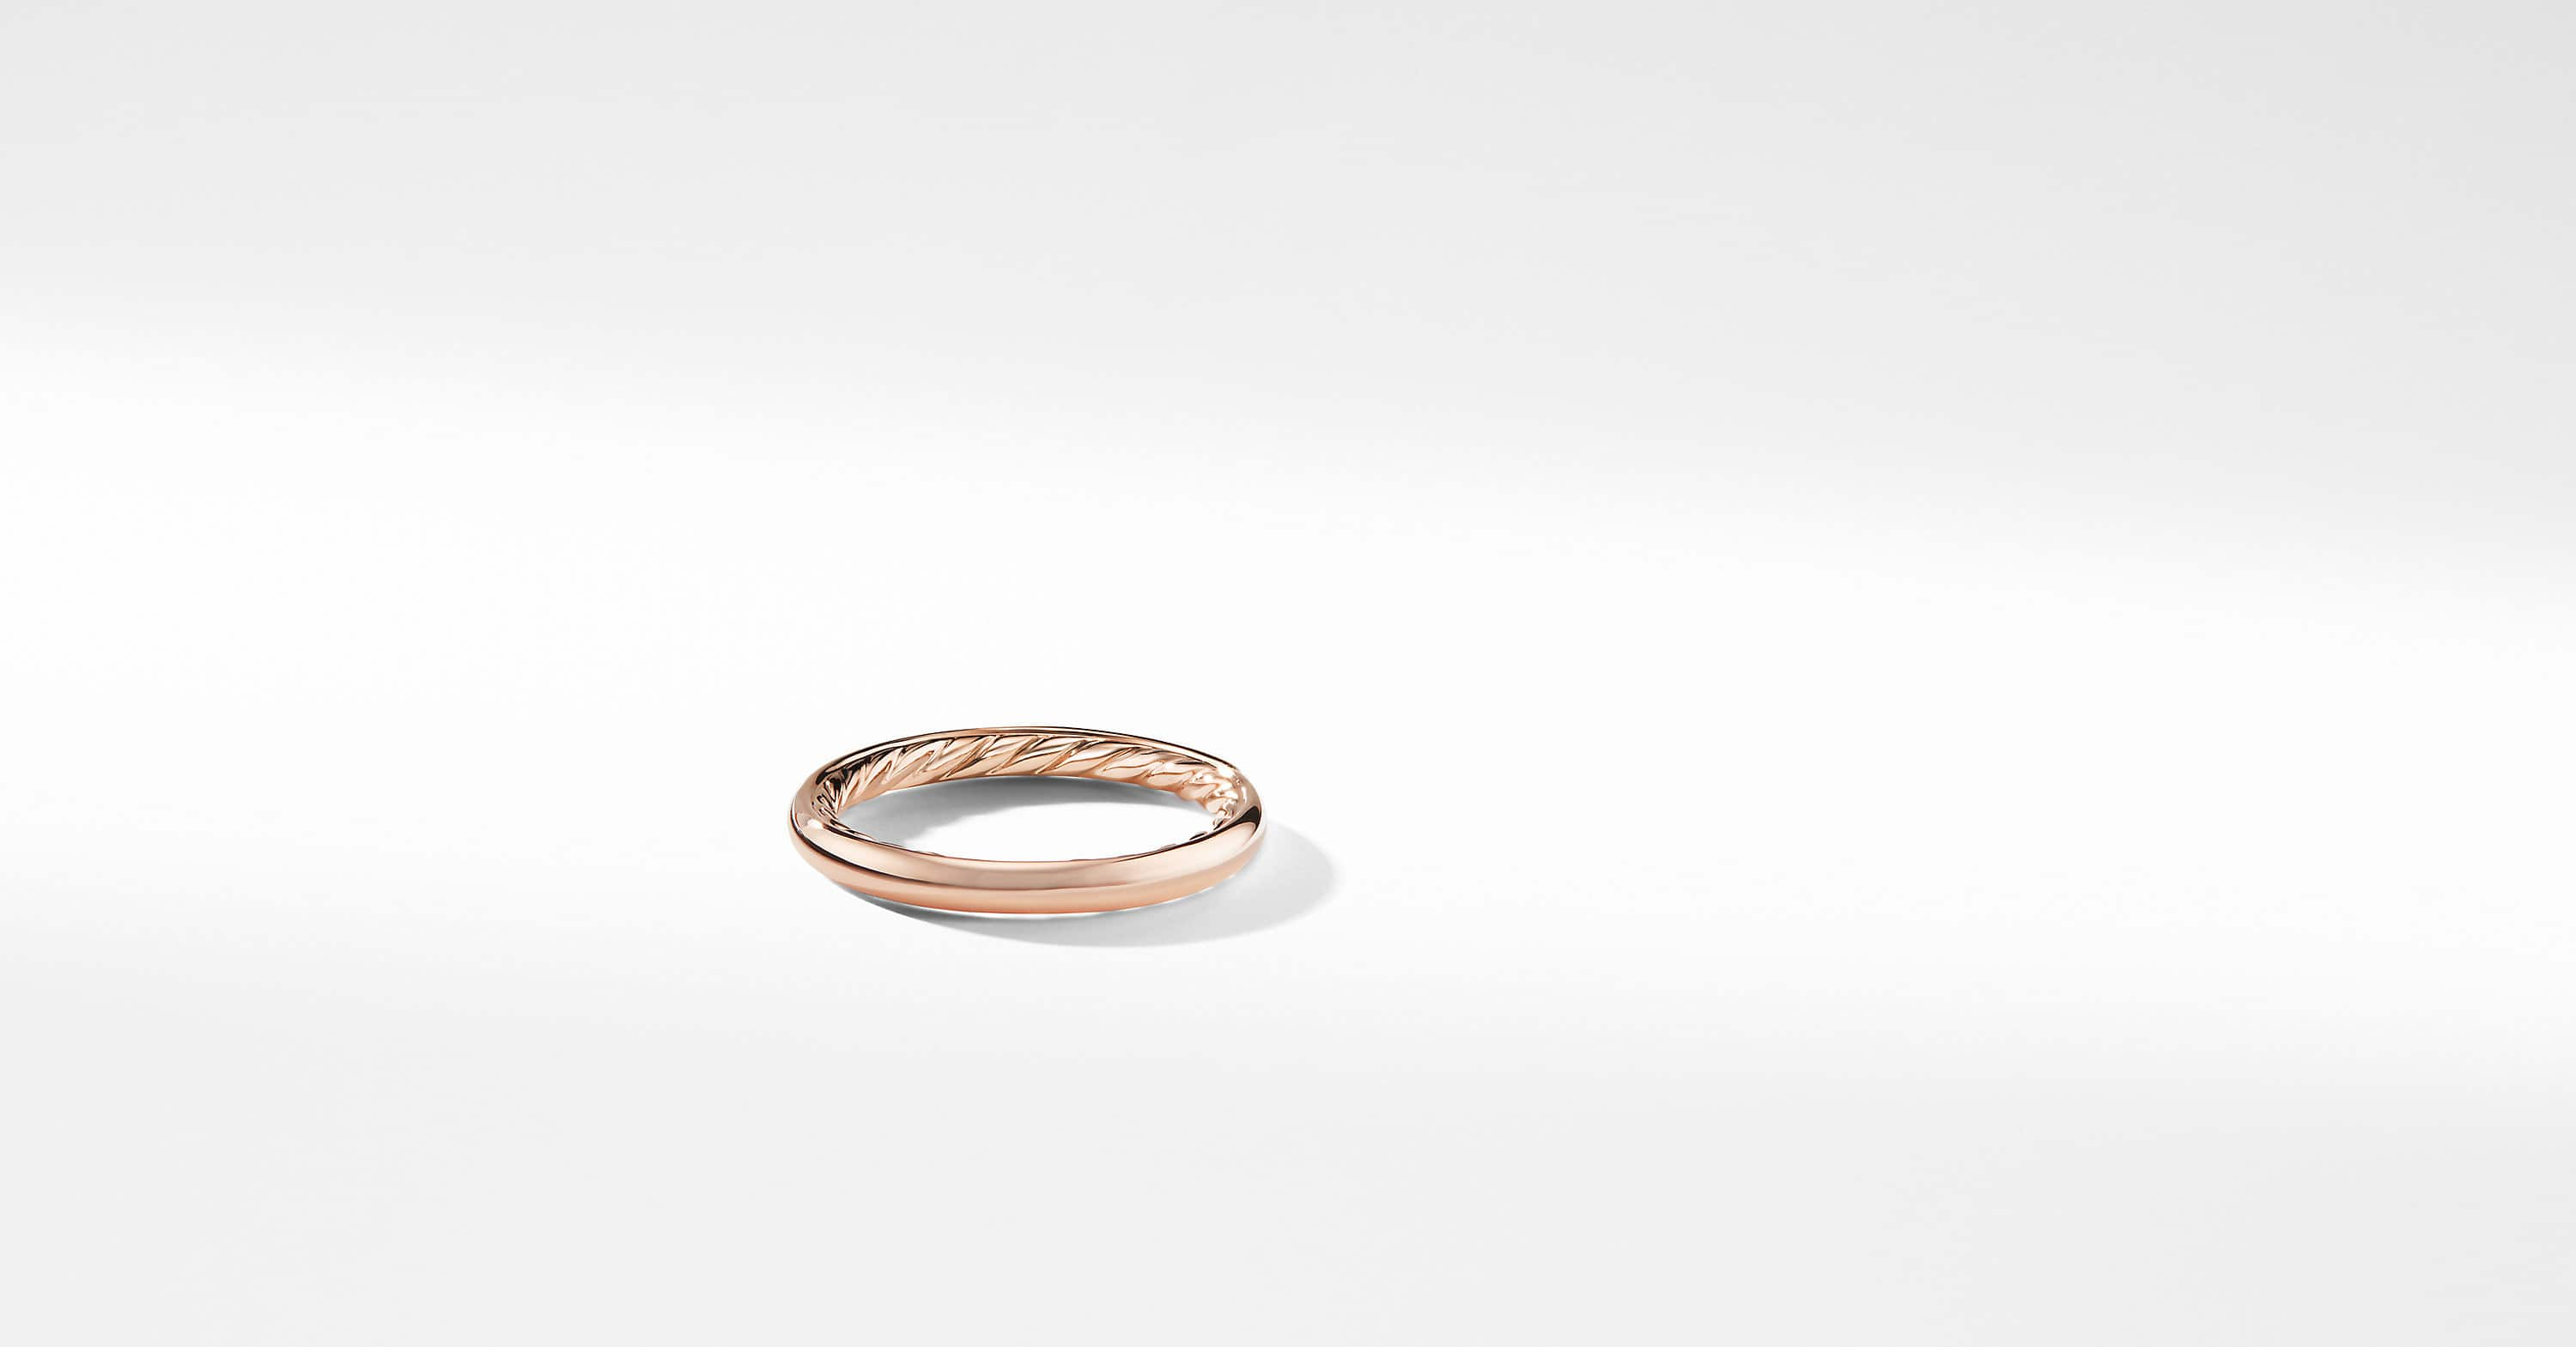 DY Eden Smooth Wedding Band in 18K Rose Gold, 2.5mm